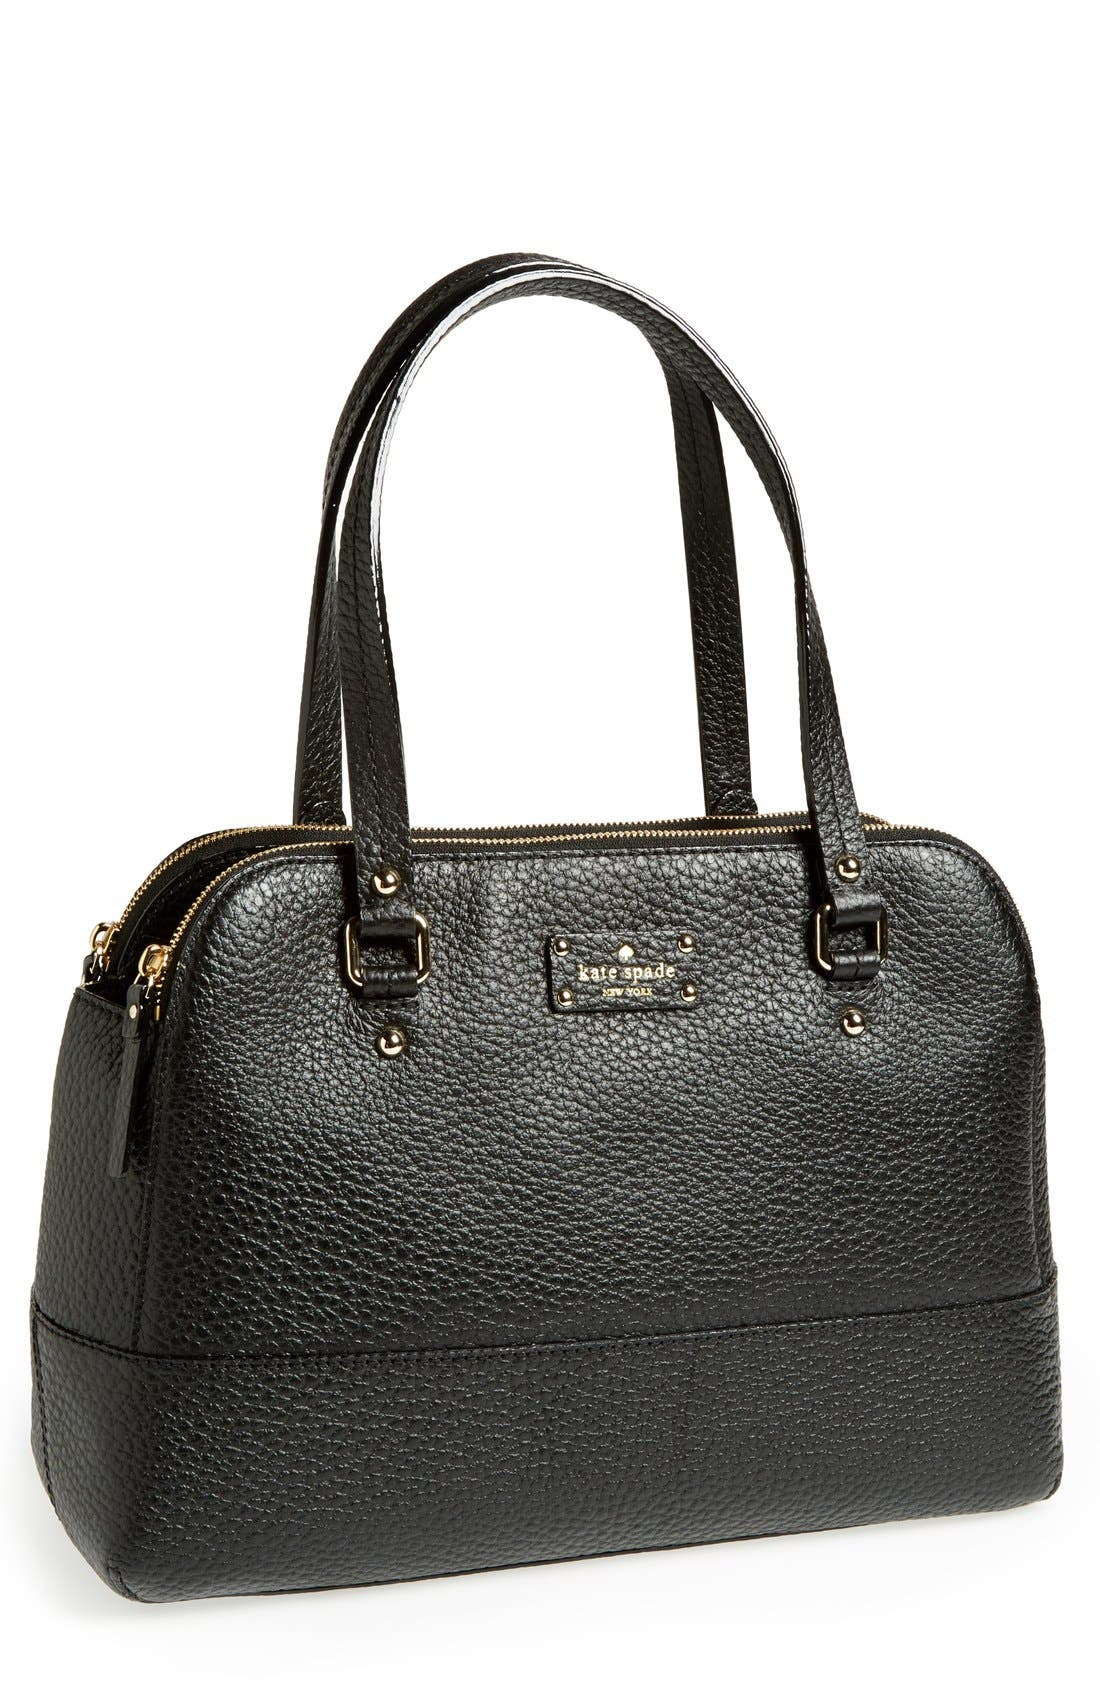 Alternate Image 1 Selected - kate spade new york 'grove court - lainey' leather tote